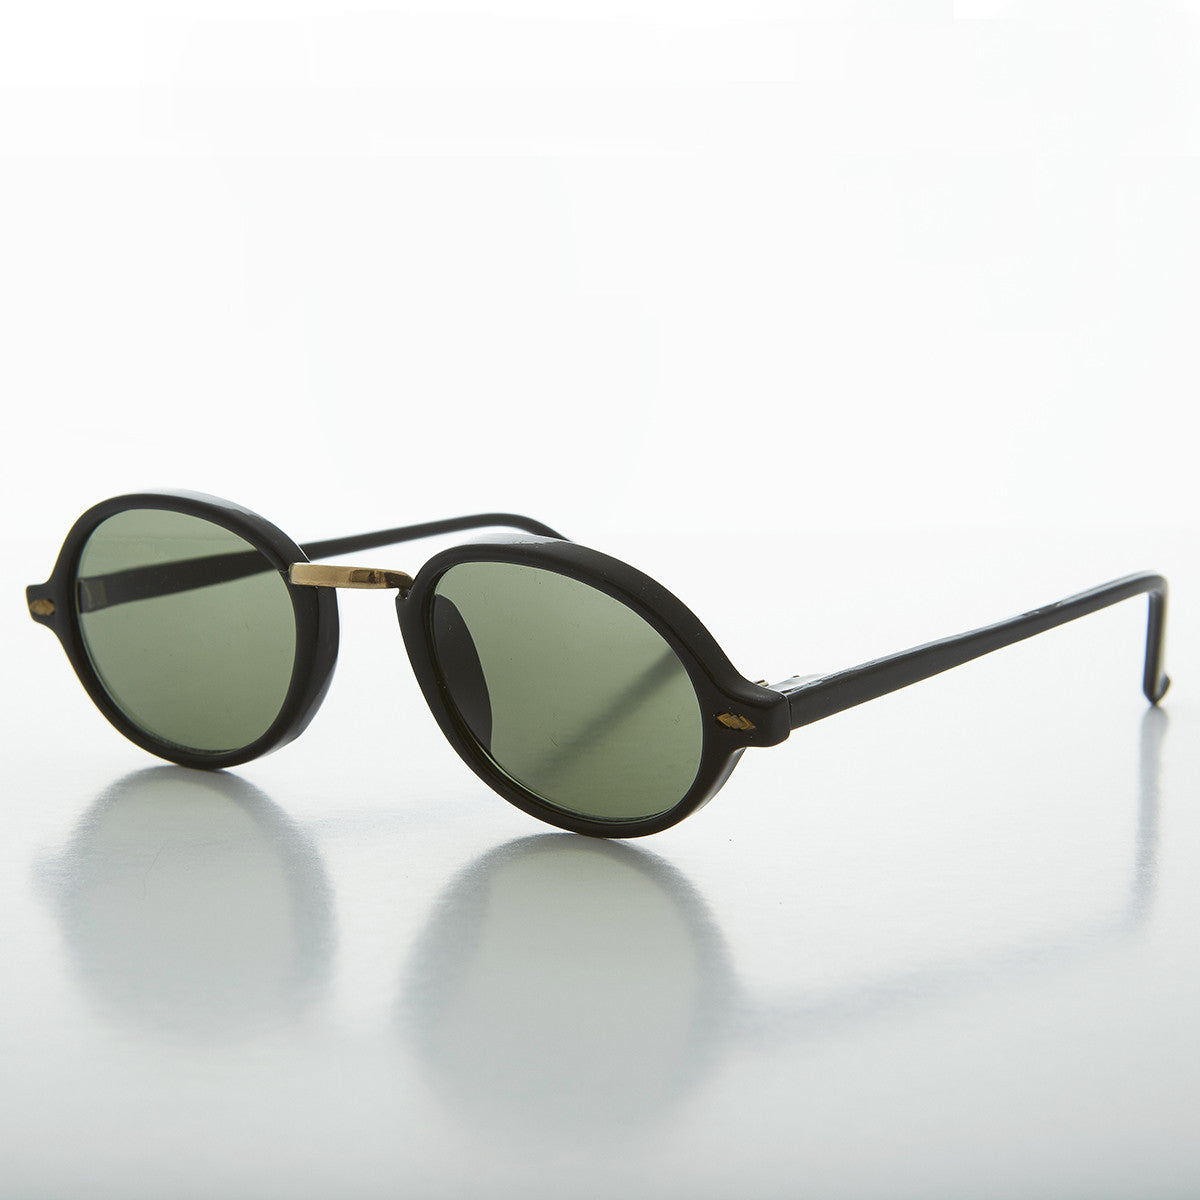 90s Classic Victorian Oval Vintage Sunglasses with Metal Bridge - Boston